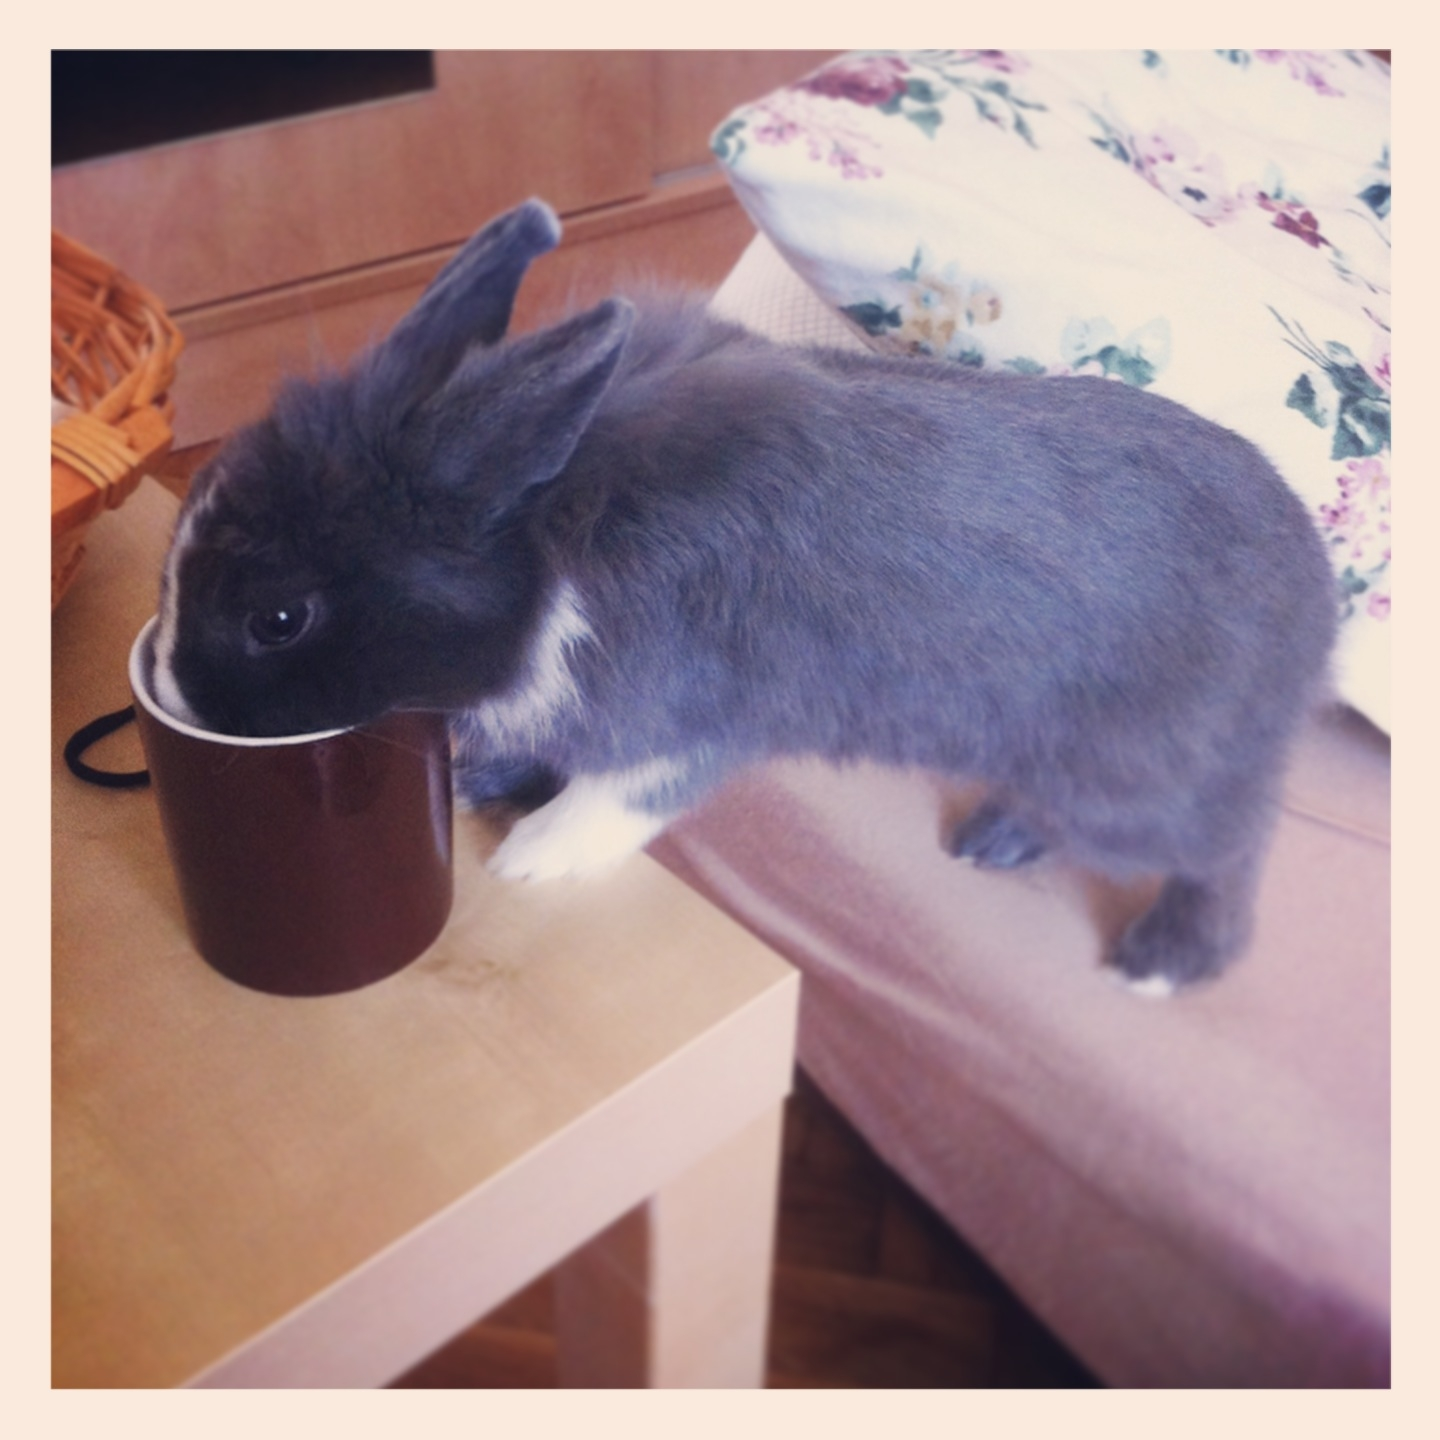 Curious Bunny Decides to Find Out What's in Human's Mug 2